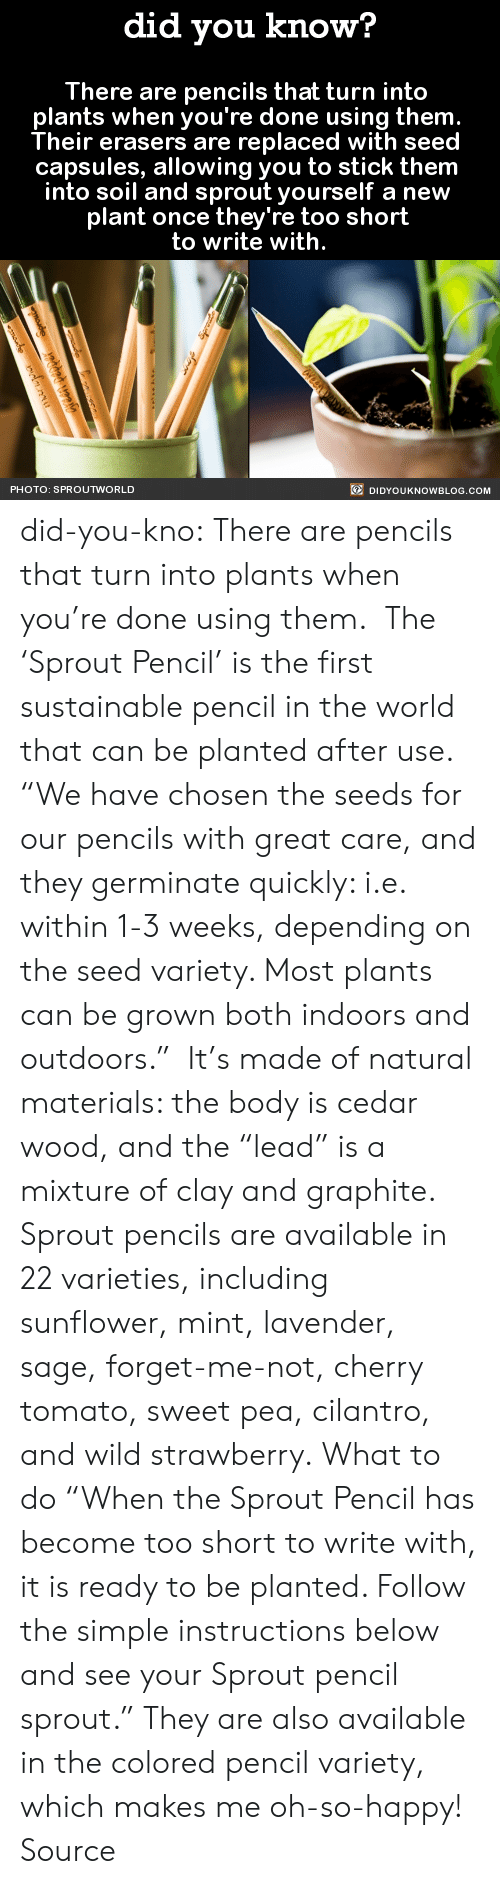 """soil: did you know?  There are pencils that turn into  plants when you're done using them  Their erasers are replaced with seed  capsules, allowing you to stick them  into soil and sprout yourself a new  plant once they're too short  to write with.  PHOTO: SPROUTWORLD  DIDYOUKNOWBLOG.COM did-you-kno:  There are pencils that turn into  plants when you're done using them.   The 'Sprout Pencil' is the first sustainable pencil in the world that can be planted after use.   """"We have chosen the seeds for our pencils with great care, and they germinate quickly: i.e. within 1-3 weeks, depending on the seed variety. Most plants can be grown both indoors and outdoors."""" It's made of natural materials: the body is cedar wood, and the """"lead"""" is a mixture of clay and graphite. Sprout pencils are available in 22 varieties, including sunflower, mint, lavender, sage, forget-me-not, cherry tomato, sweet pea, cilantro, and wild strawberry. What to do """"When the Sprout Pencil has become too short to write with, it is ready to be planted. Follow the simple instructions below and see your Sprout pencil sprout."""" They are also available in the colored pencil variety, which makes me oh-so-happy! Source"""